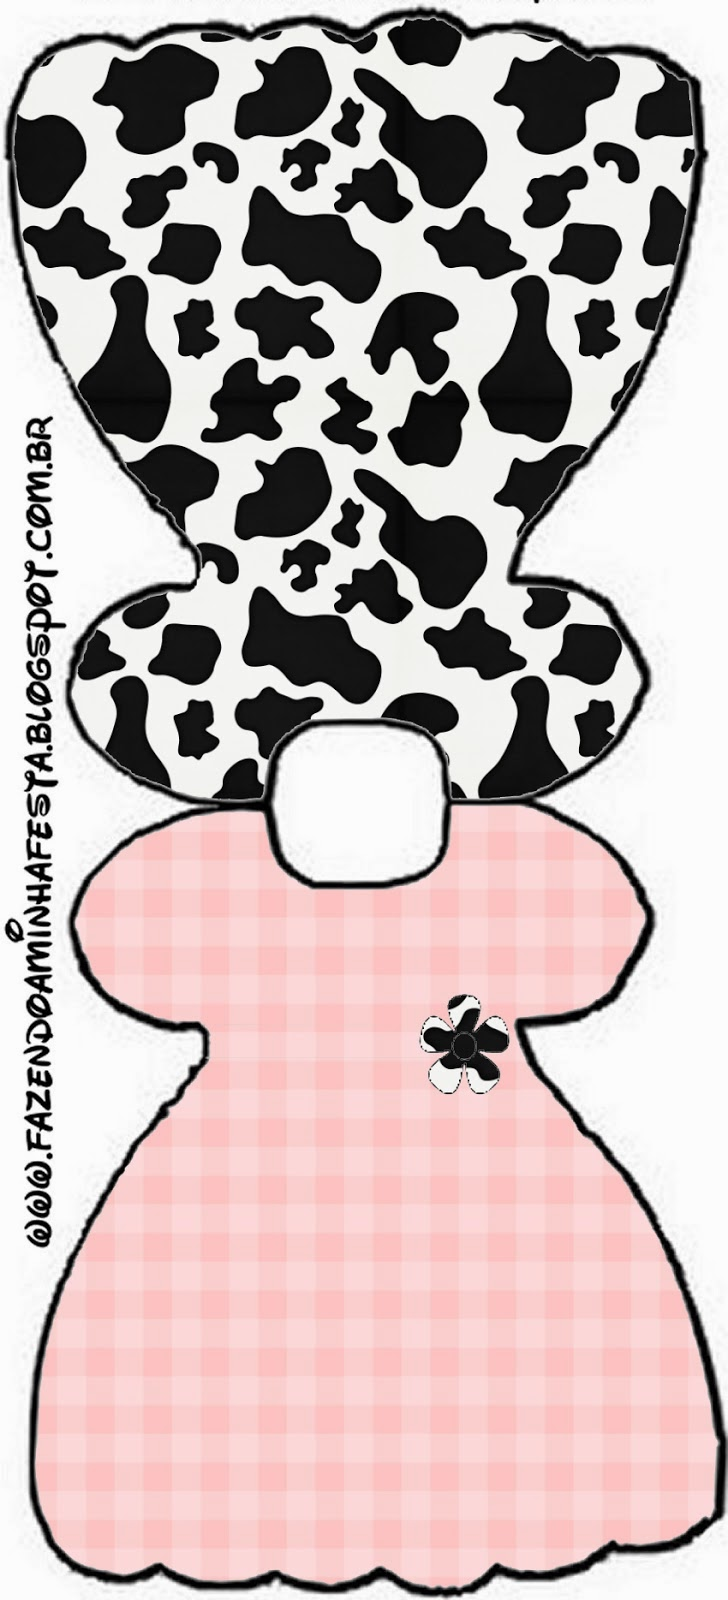 cowgirl party printable invitations is it for parties is dress invitation